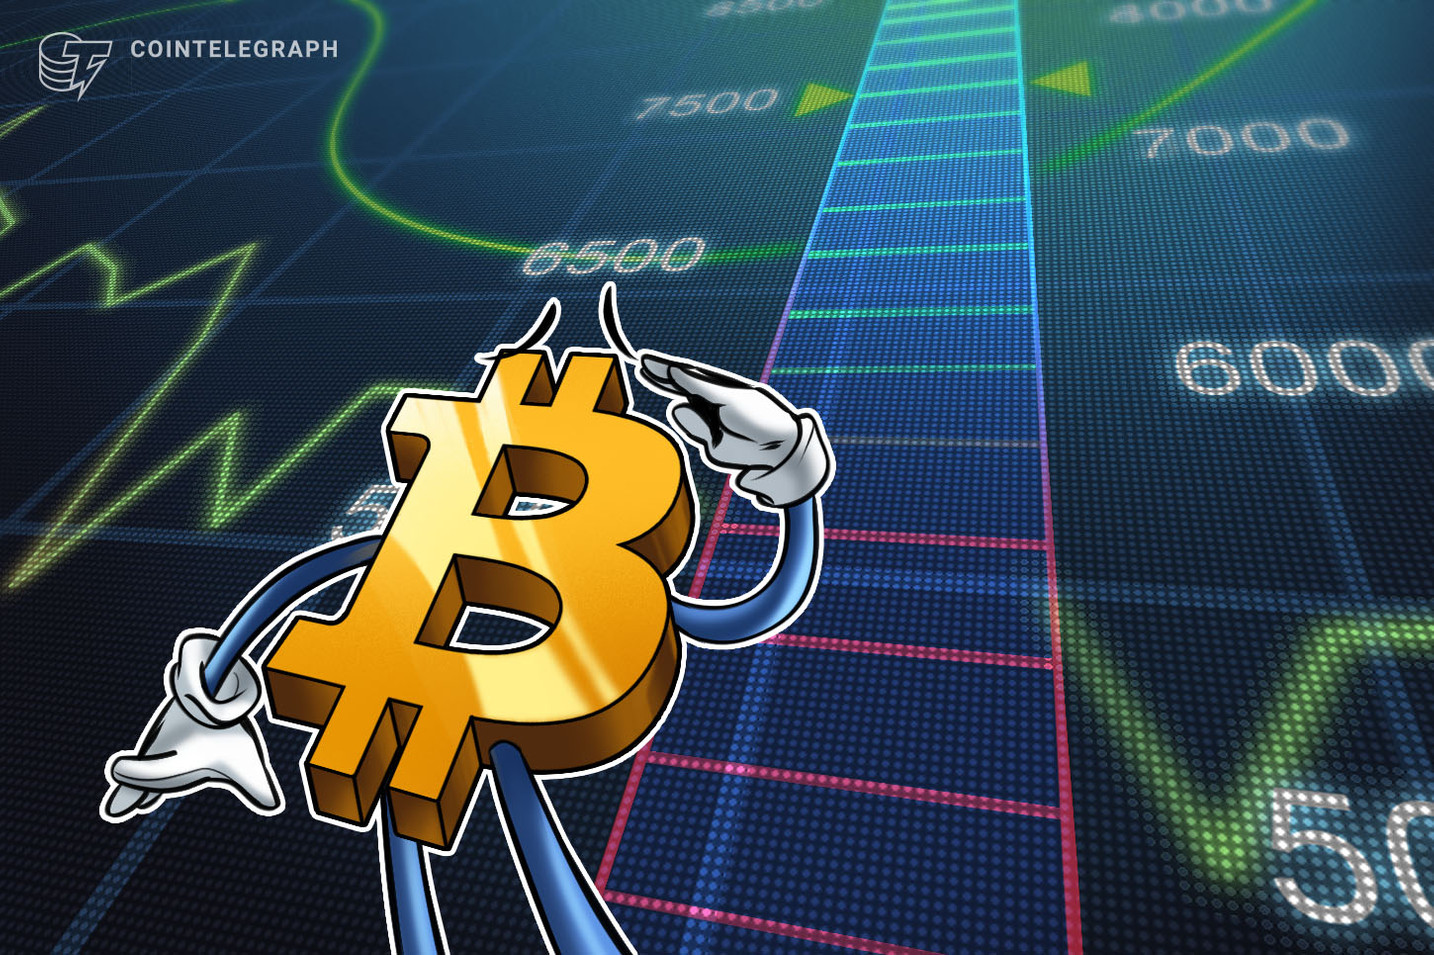 Bitcoin Almost Touches $5,600, Forming Its First Bullish Golden Cross Since October 2015